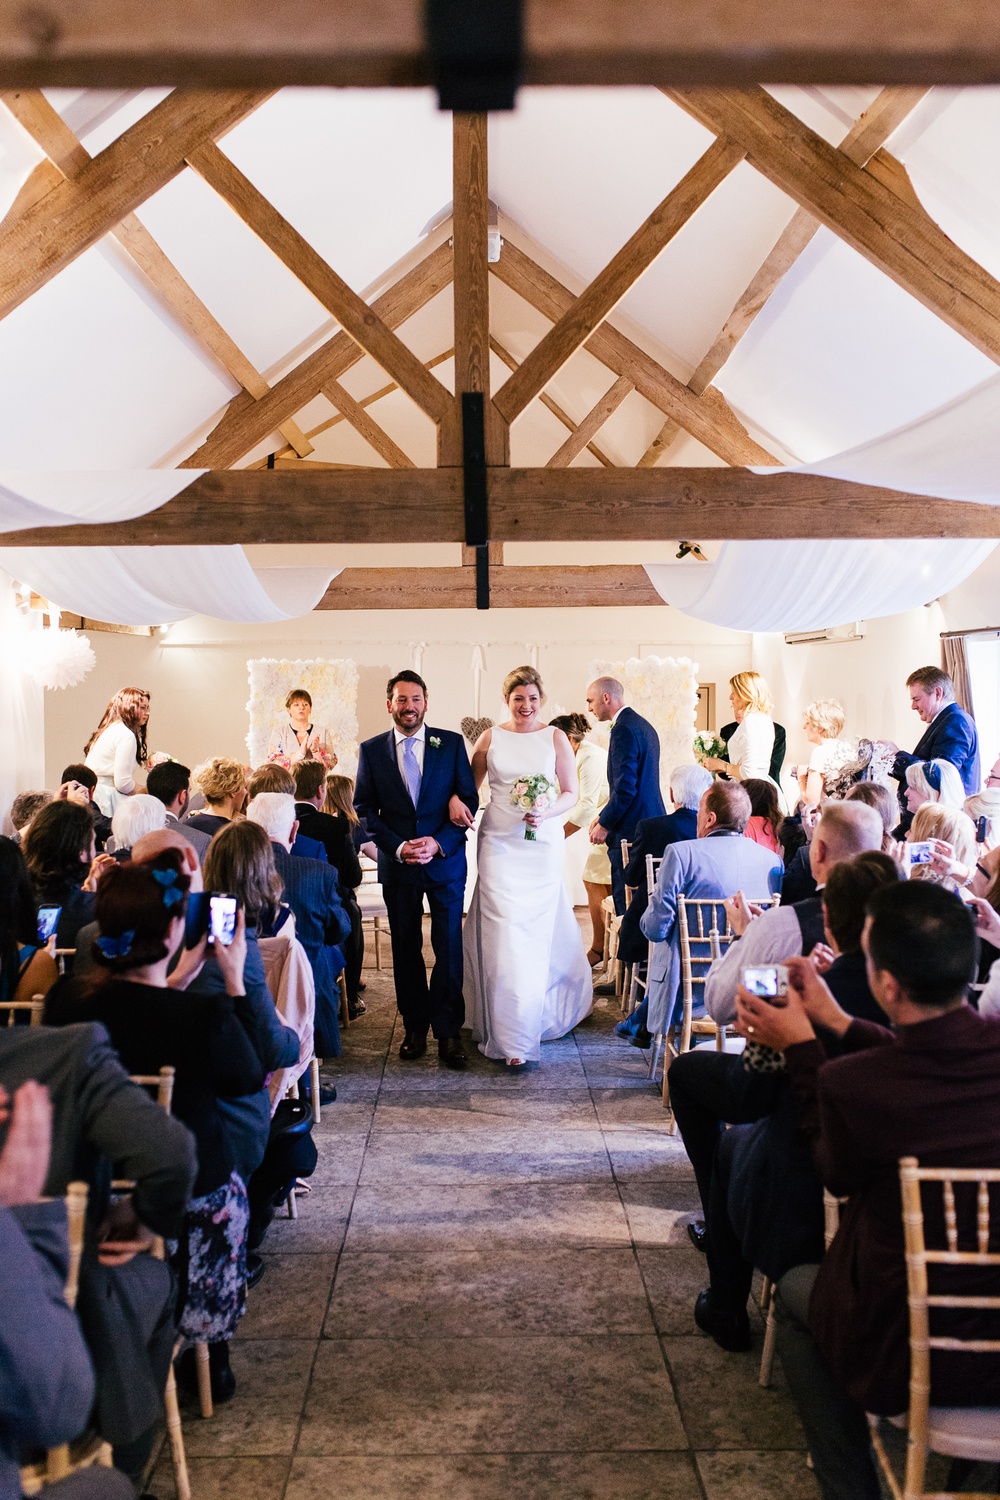 Farbridge Barn Wedding Creative Alternative Photo Chichester Joanna Nicole Photography (39 of 133).jpg